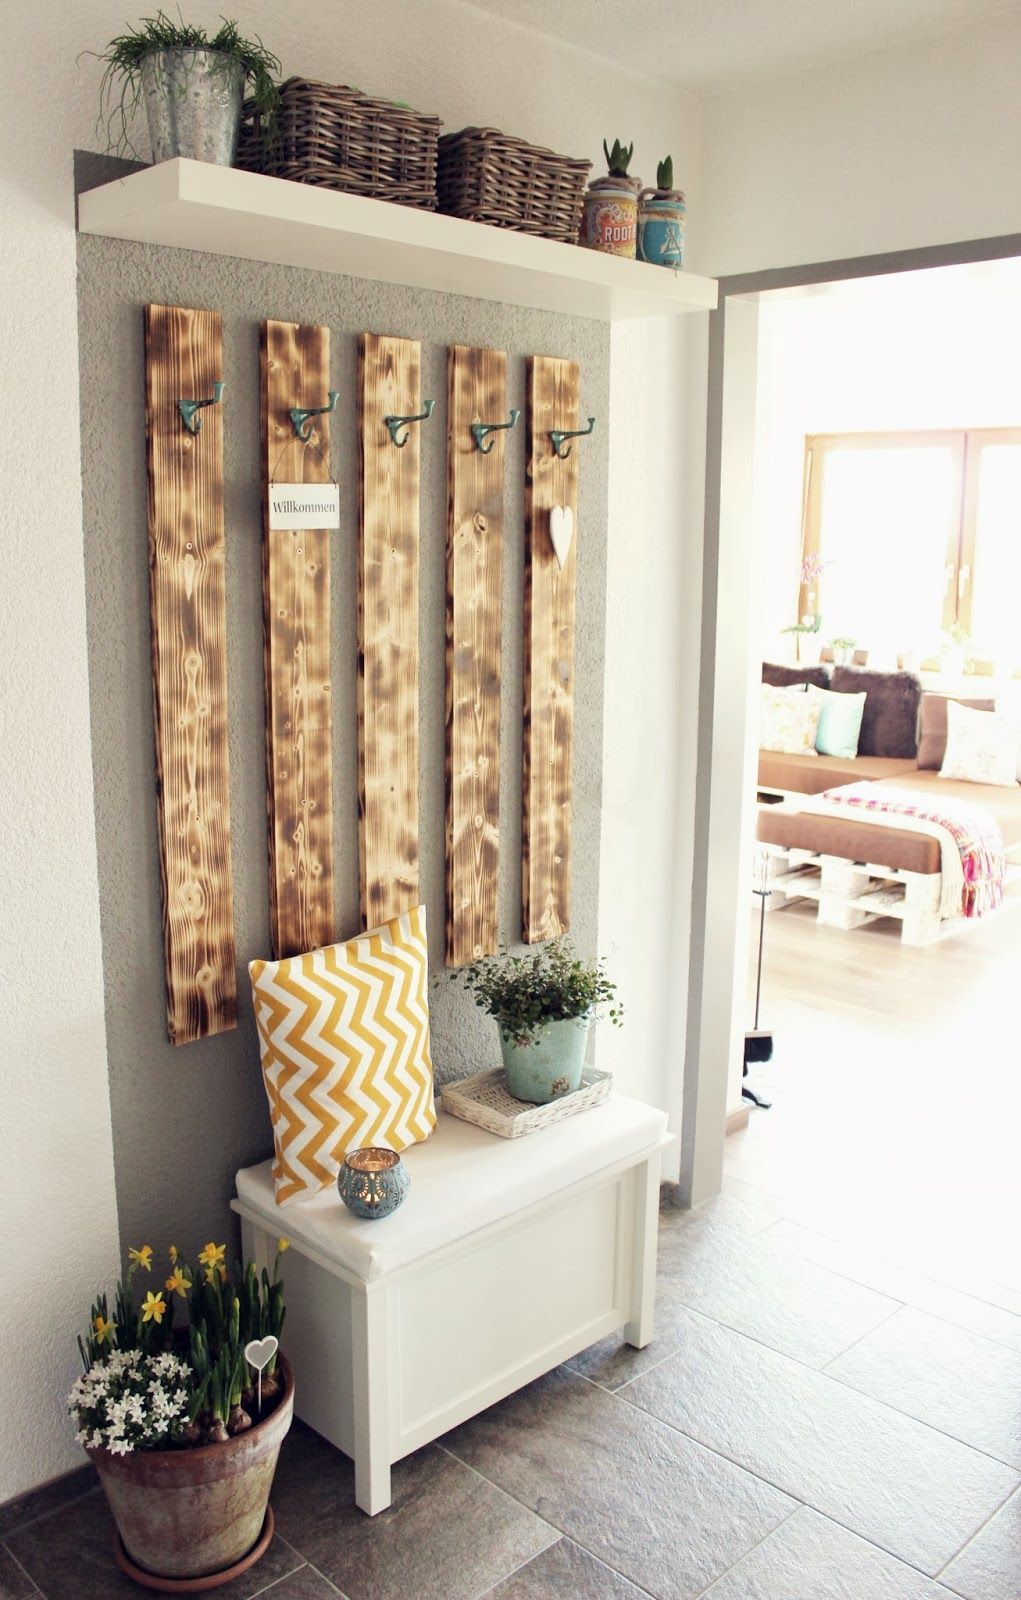 diy} garderobe (s'bastelkistle) | living | interior design, mudroom